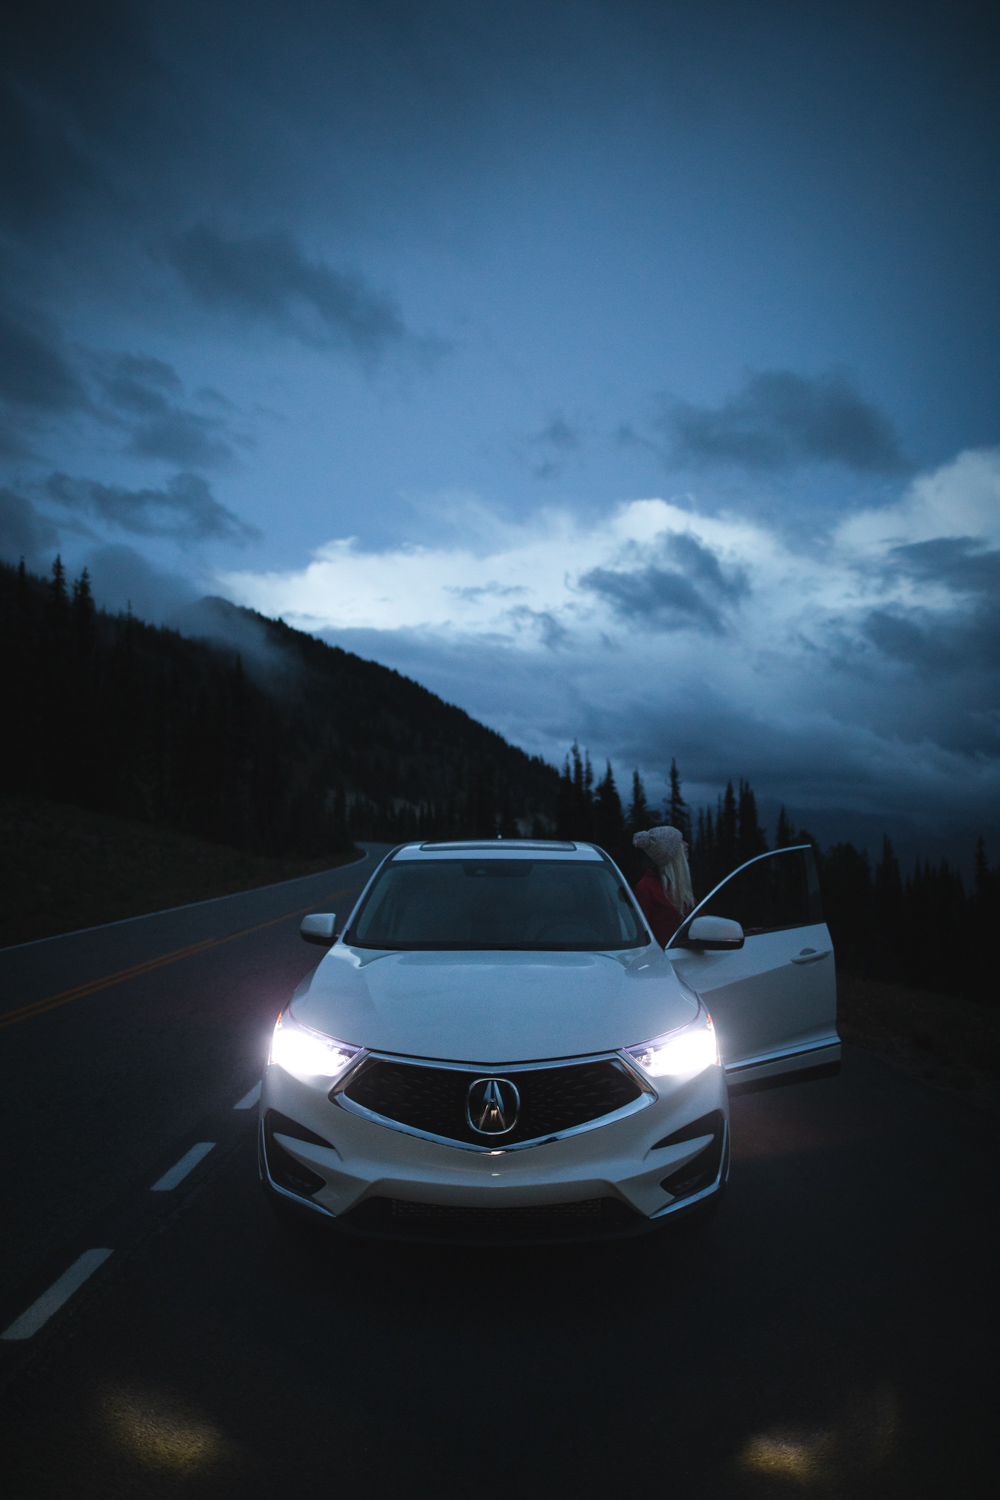 Christian-Schaffer-Photography-Acura-18.jpg